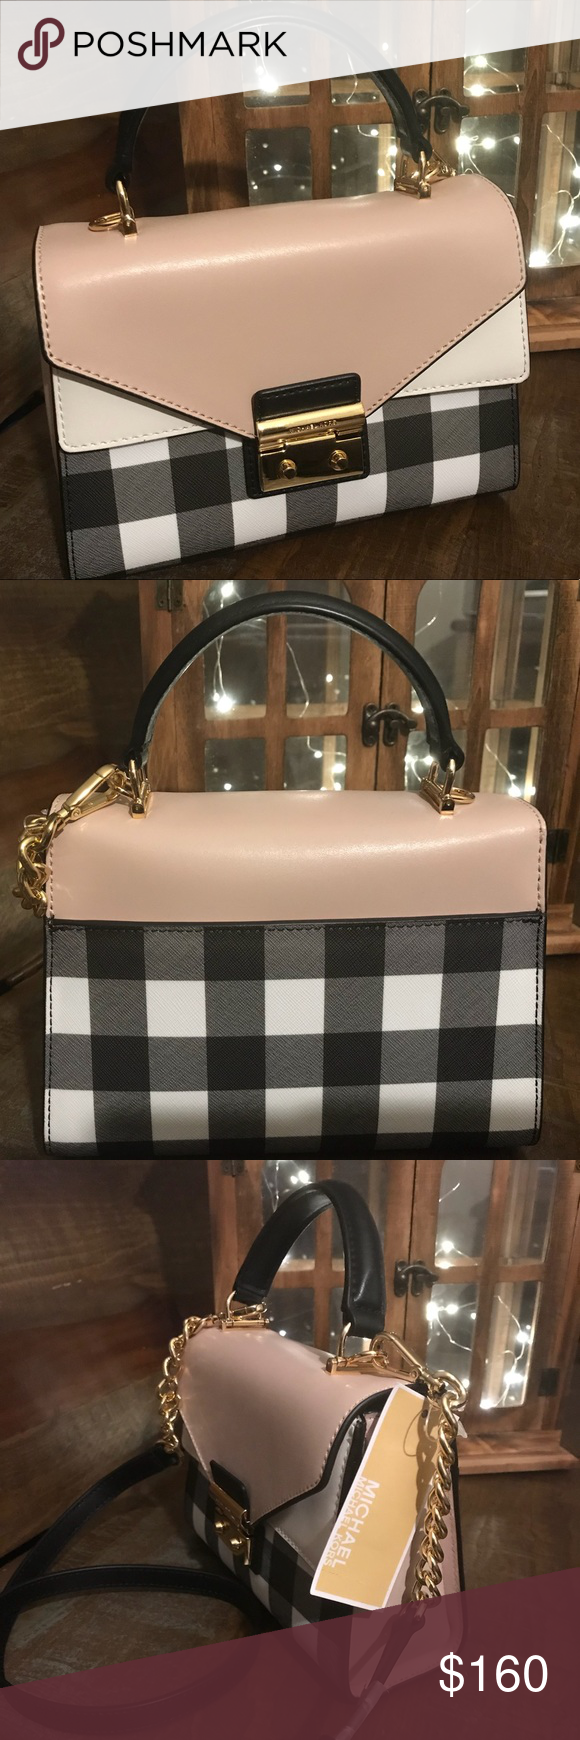 60aa690dea95 NWT Michael Kors Sloan Gingham Top-Handle Satchel NWT MK Beautiful top-handle  Sloan satchel with chain-link and leather shoulder strap,gingham print, ...